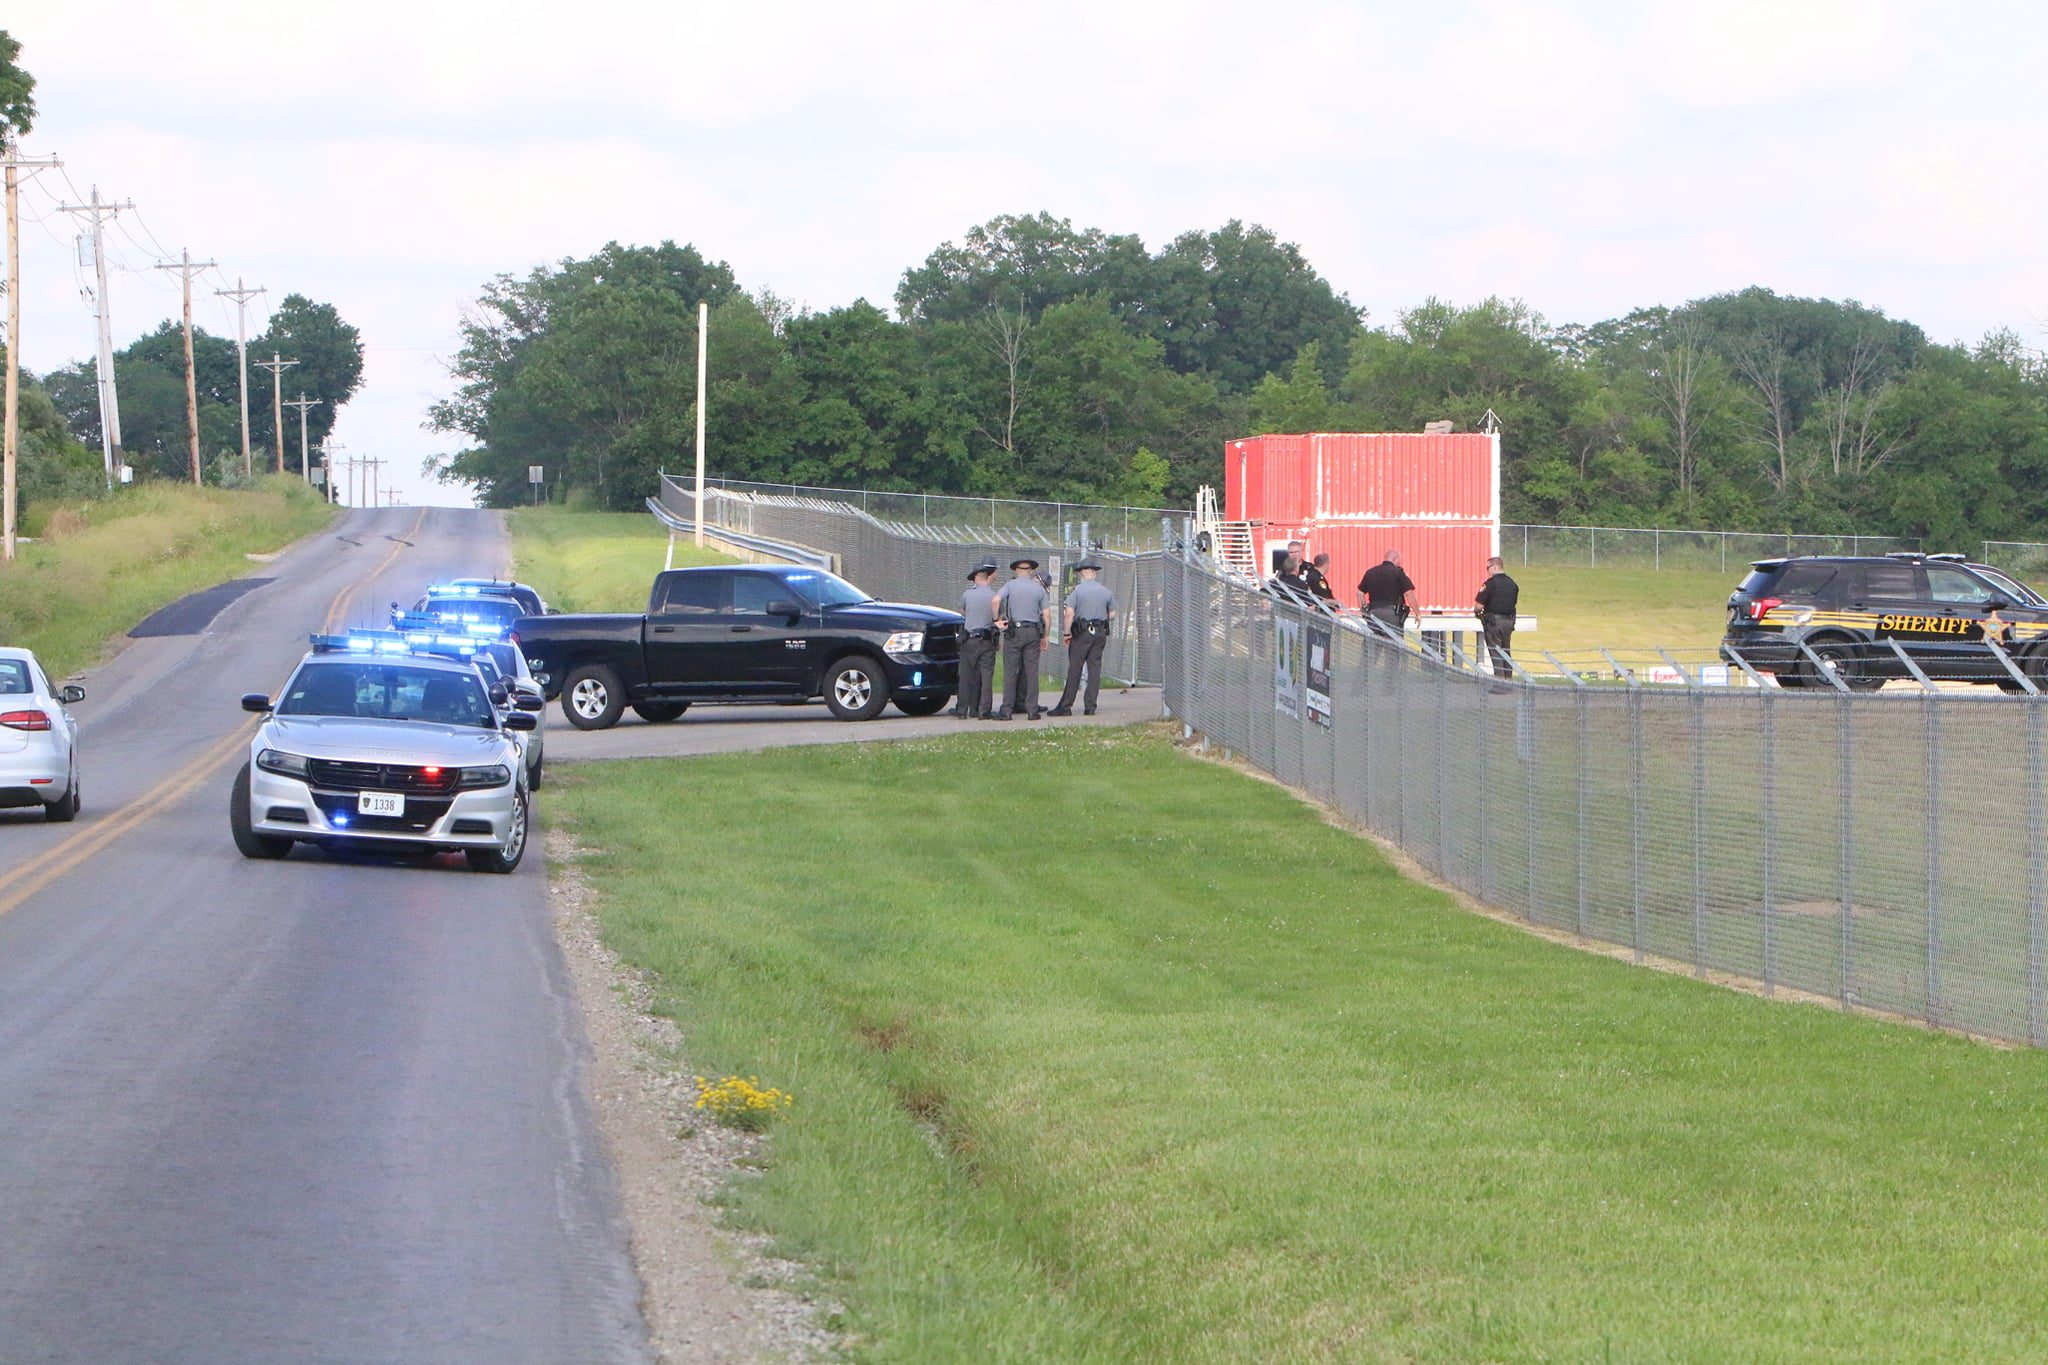 Shooting at Dragway 42 during an Import Face-Off event leaves one dead